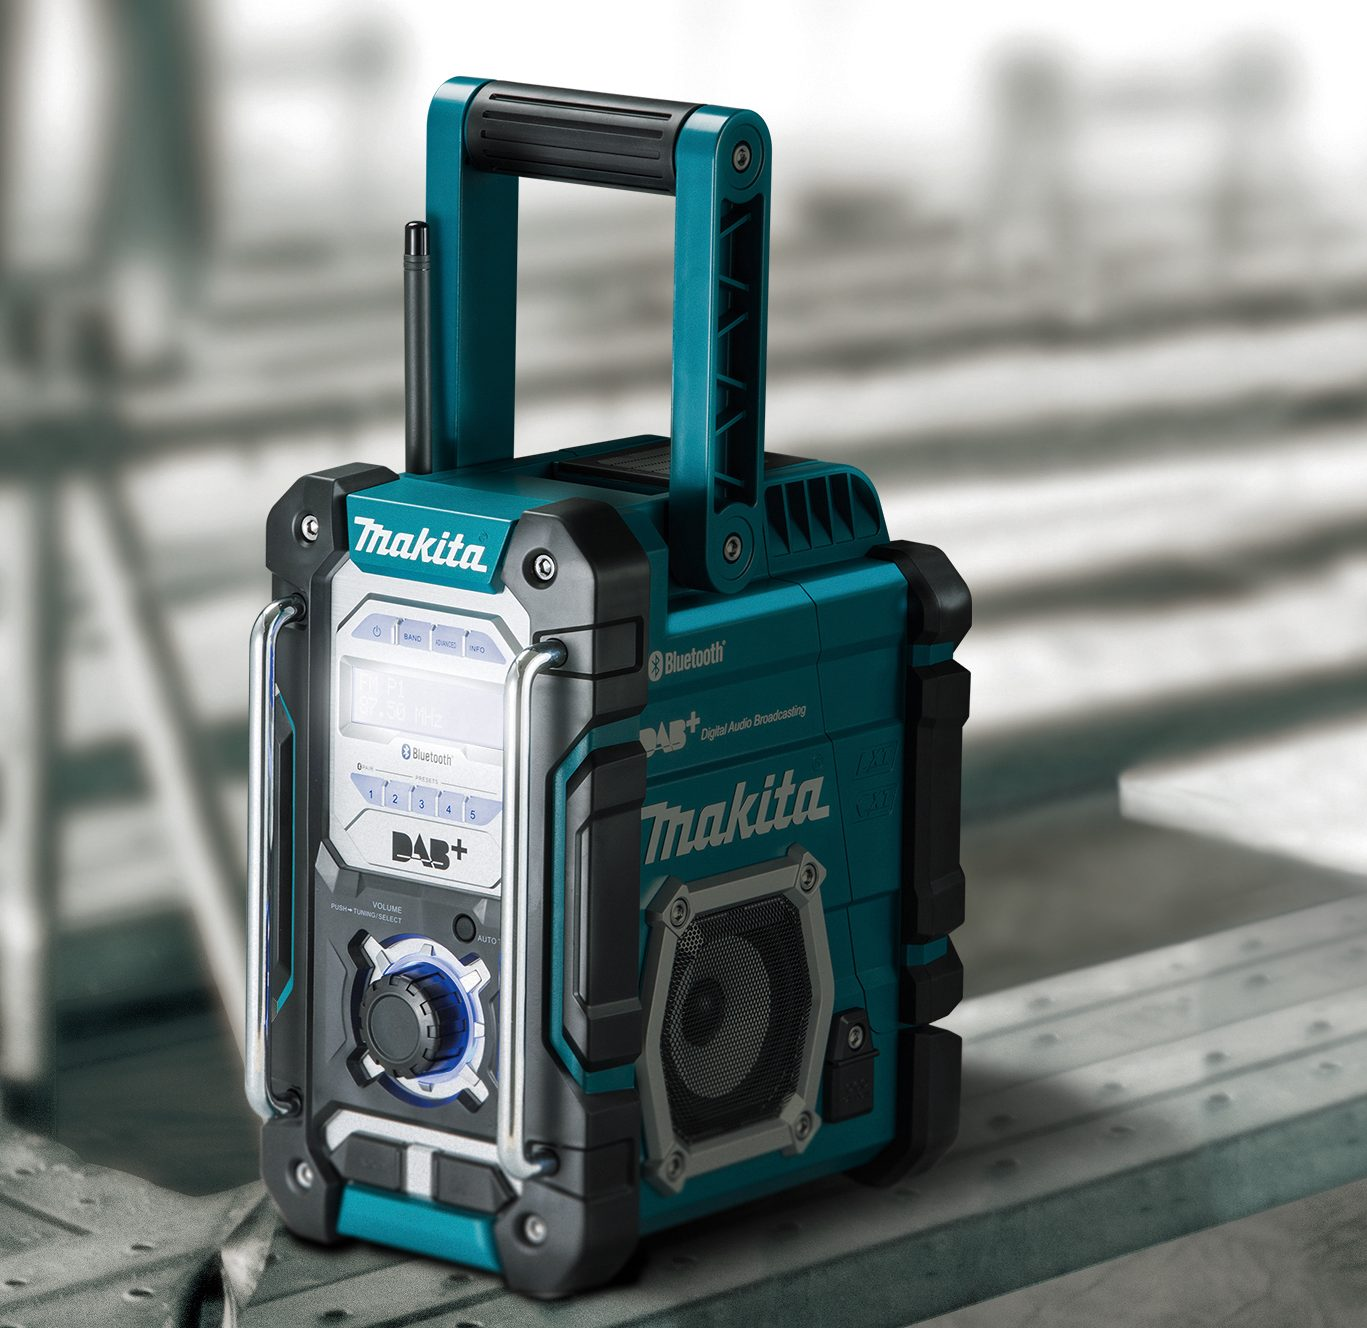 MAKITA'S FIRST 'FUTUREPROOF' JOB SITE RADIO WITH BLUETOOTH & DAB+